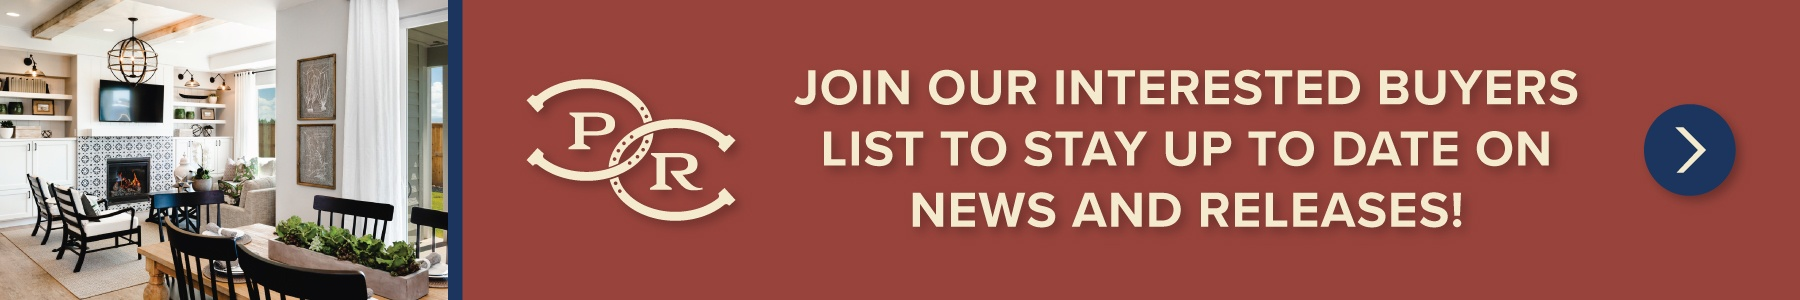 Join our interested buyers list to stay up to date on news and releases!